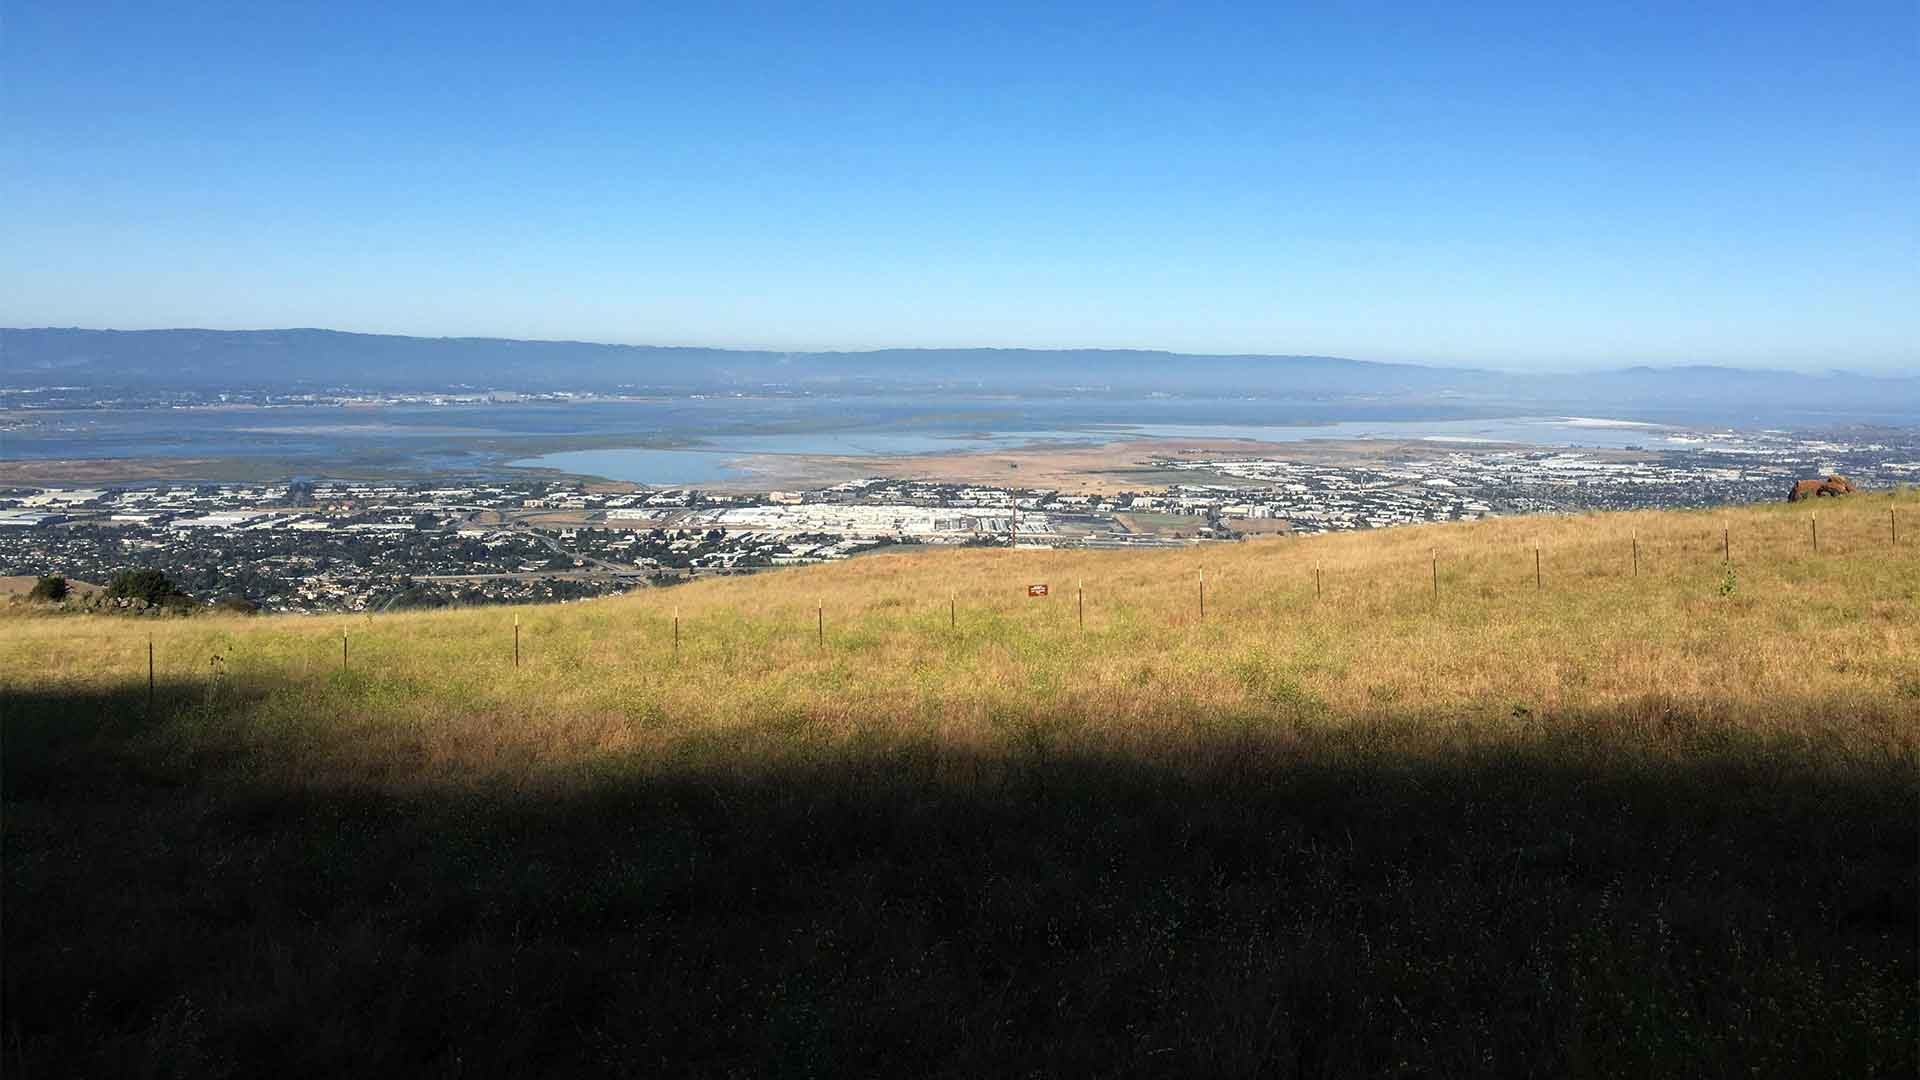 Photos from To Mission Peak 5